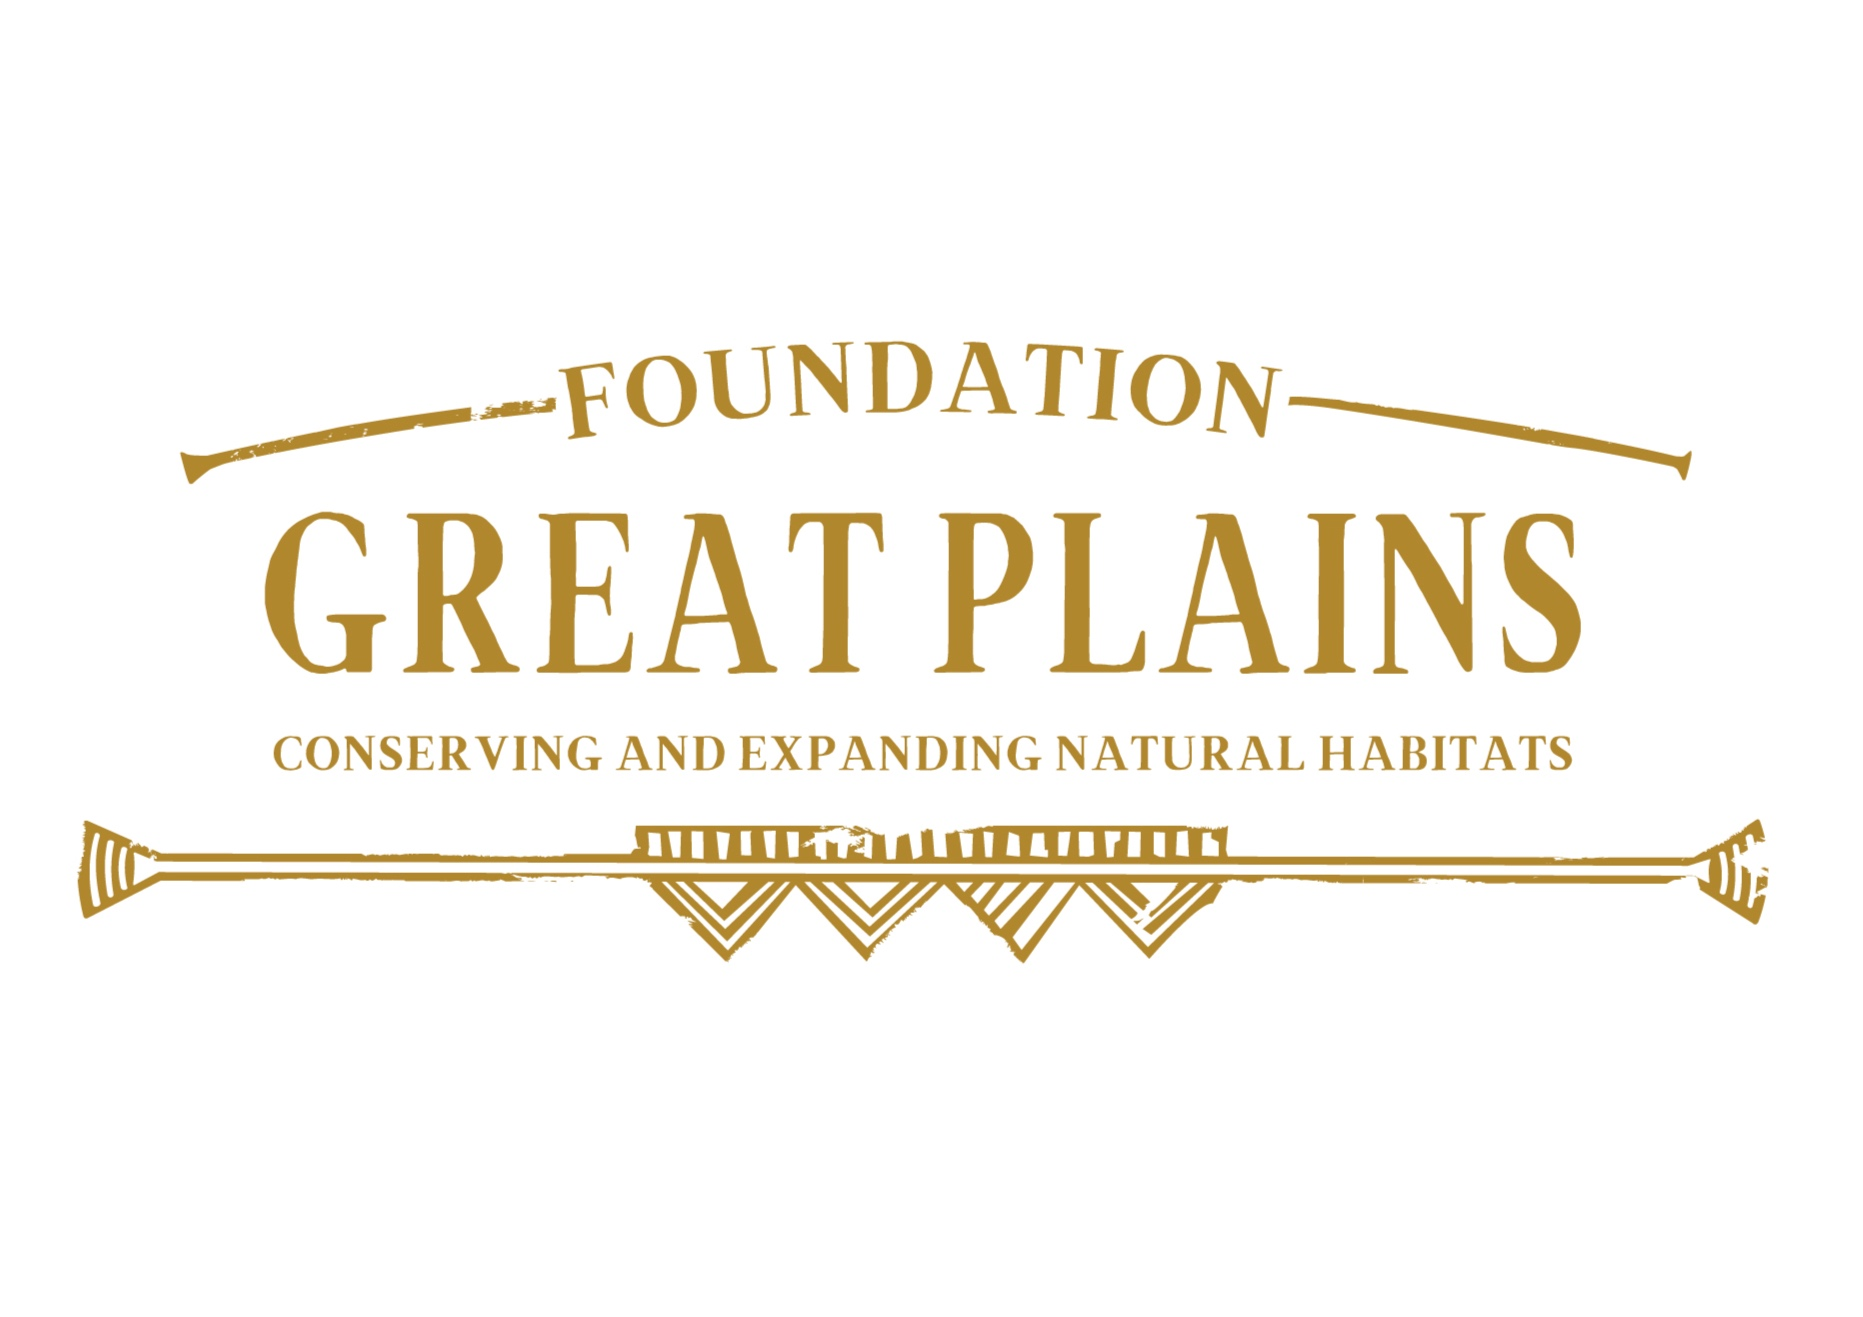 G2018GP-Great-Plains-FOUNDATION-Logo.jpg